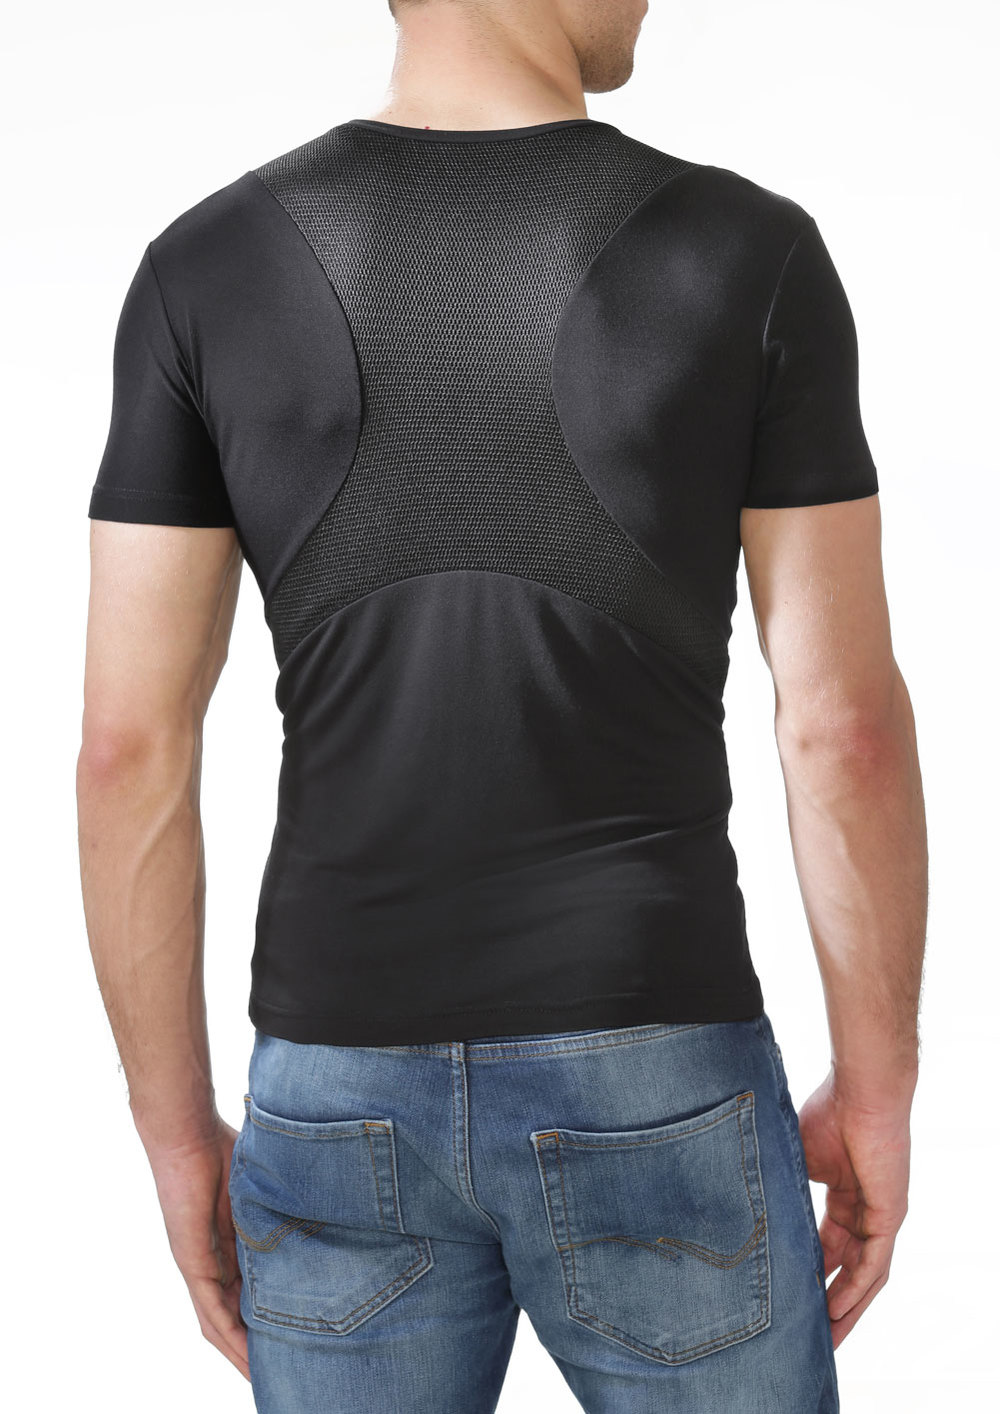 Men-Shirt-RacerBack-RT.jpg